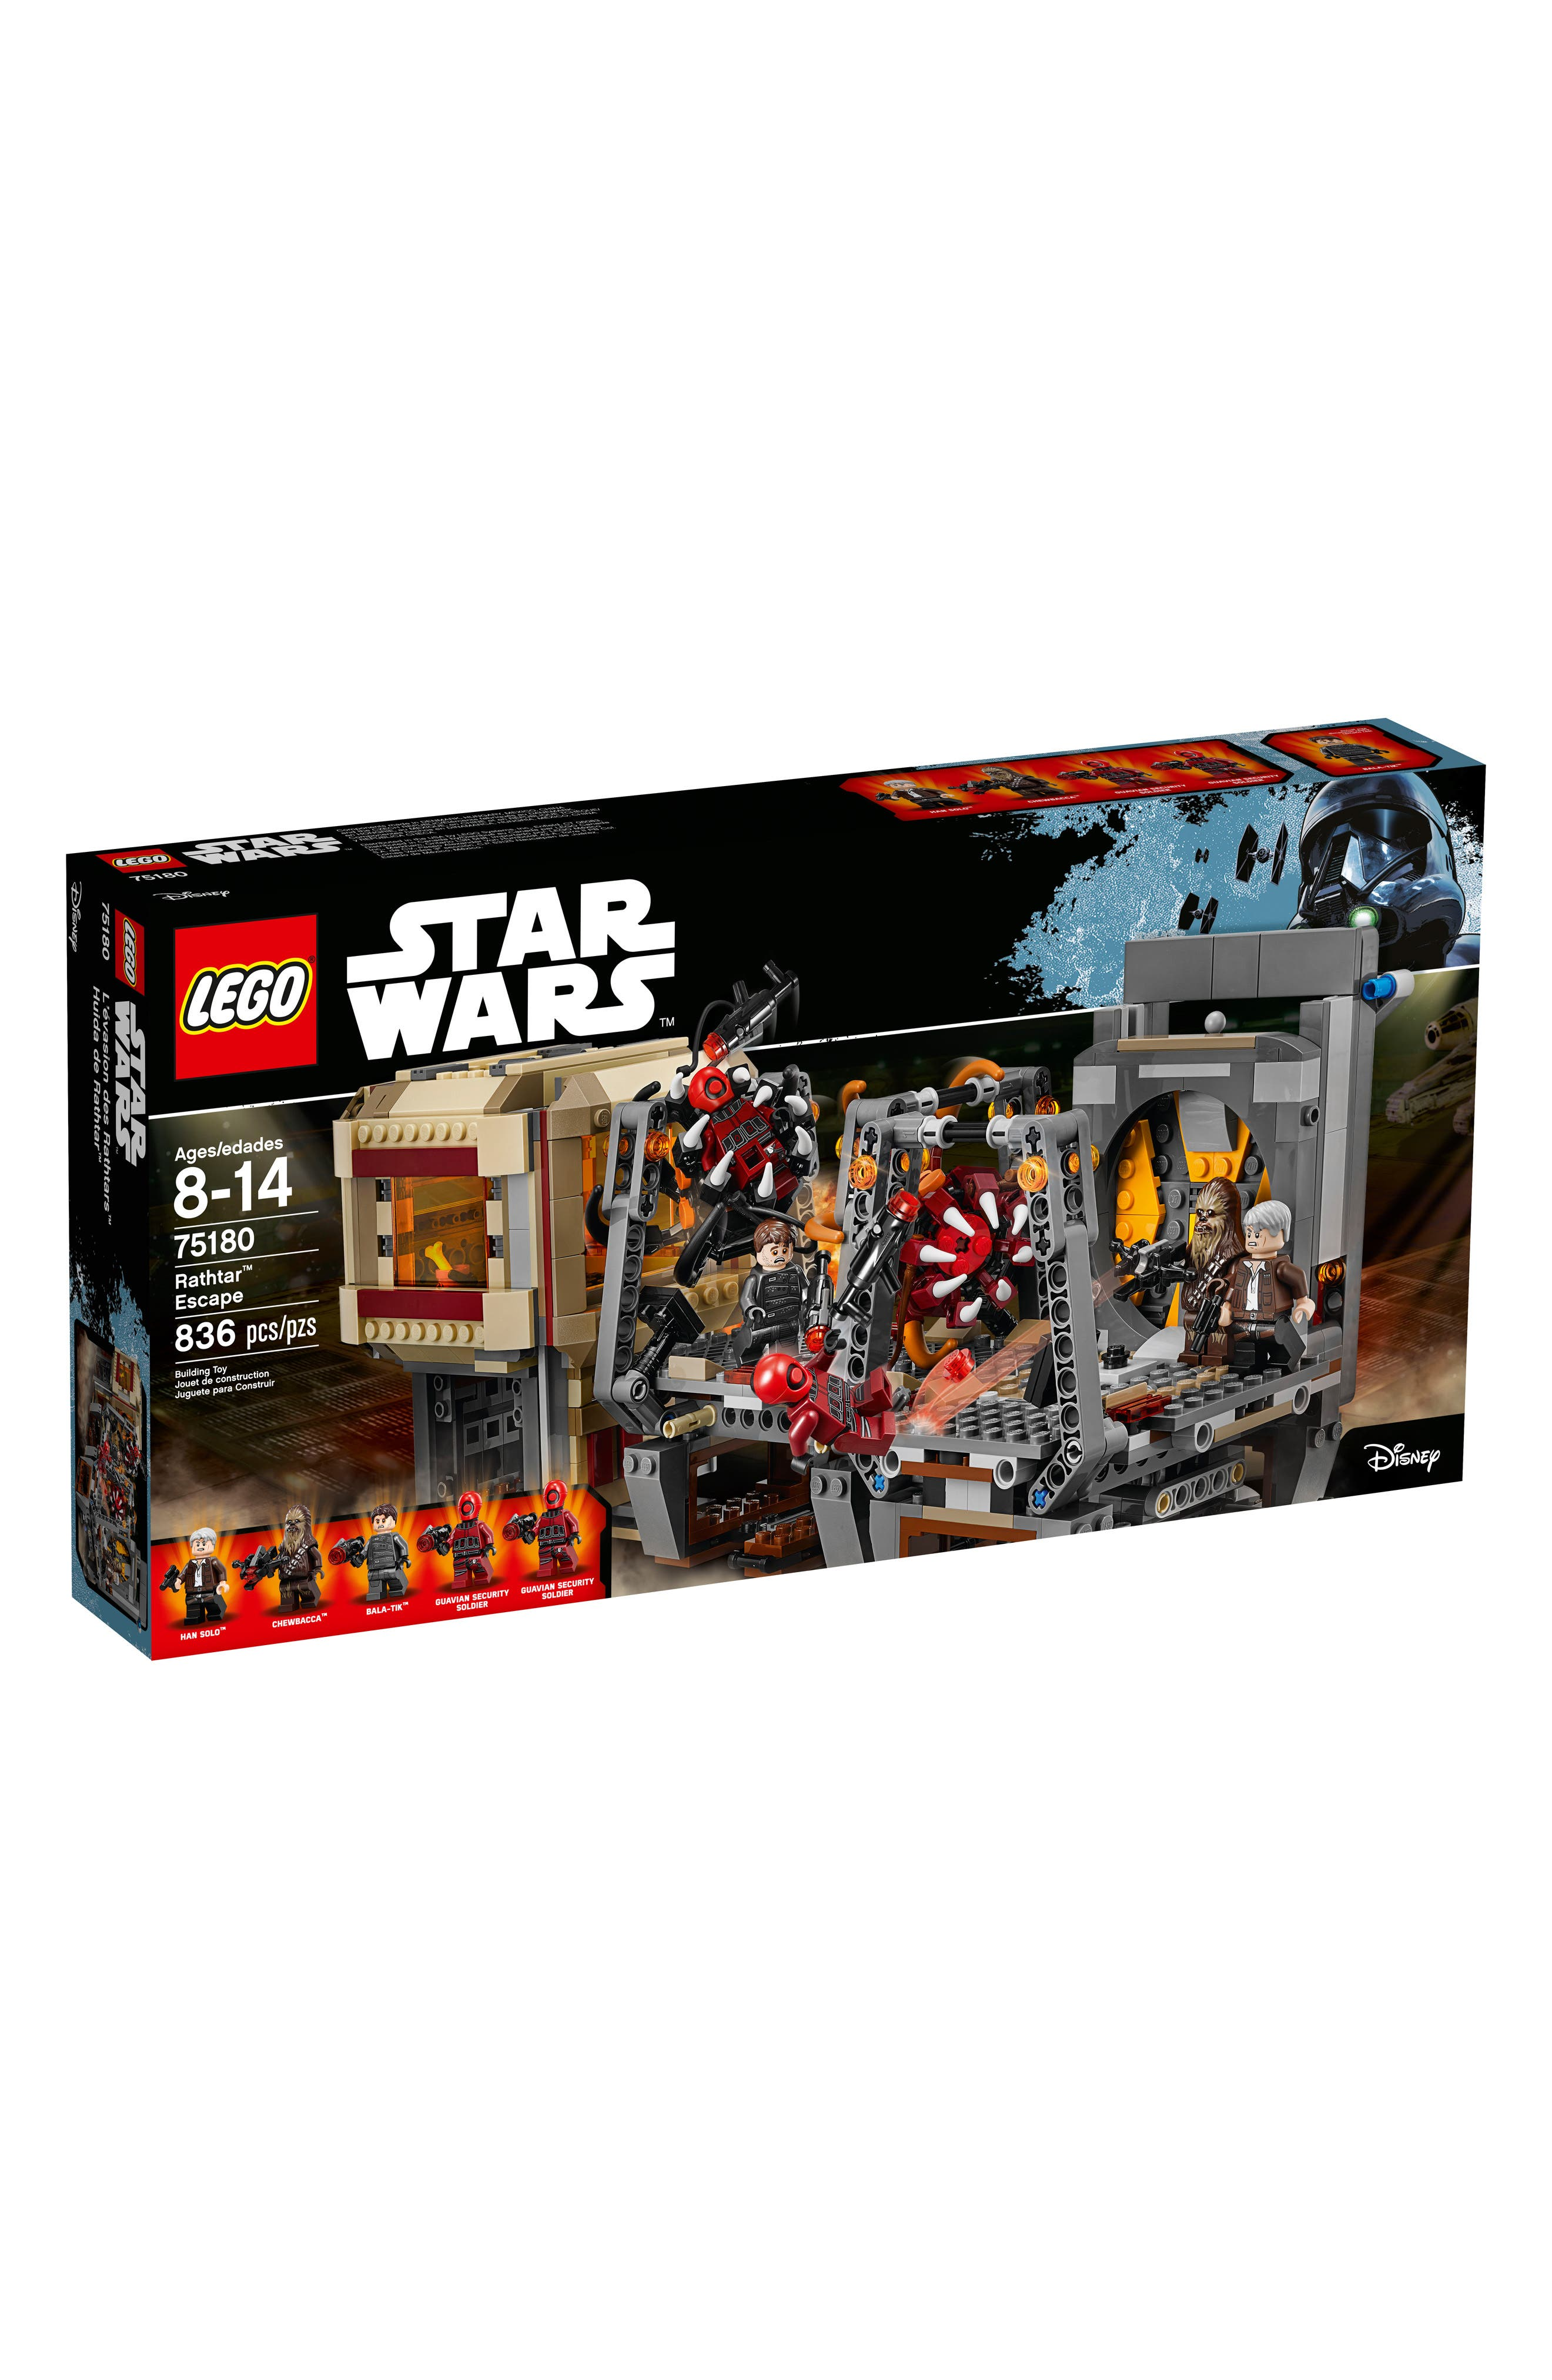 Star Wars<sup>™</sup>: The Force Awakens Rathtar<sup>™</sup> Escape Play Set - 75180,                         Main,                         color, Multi